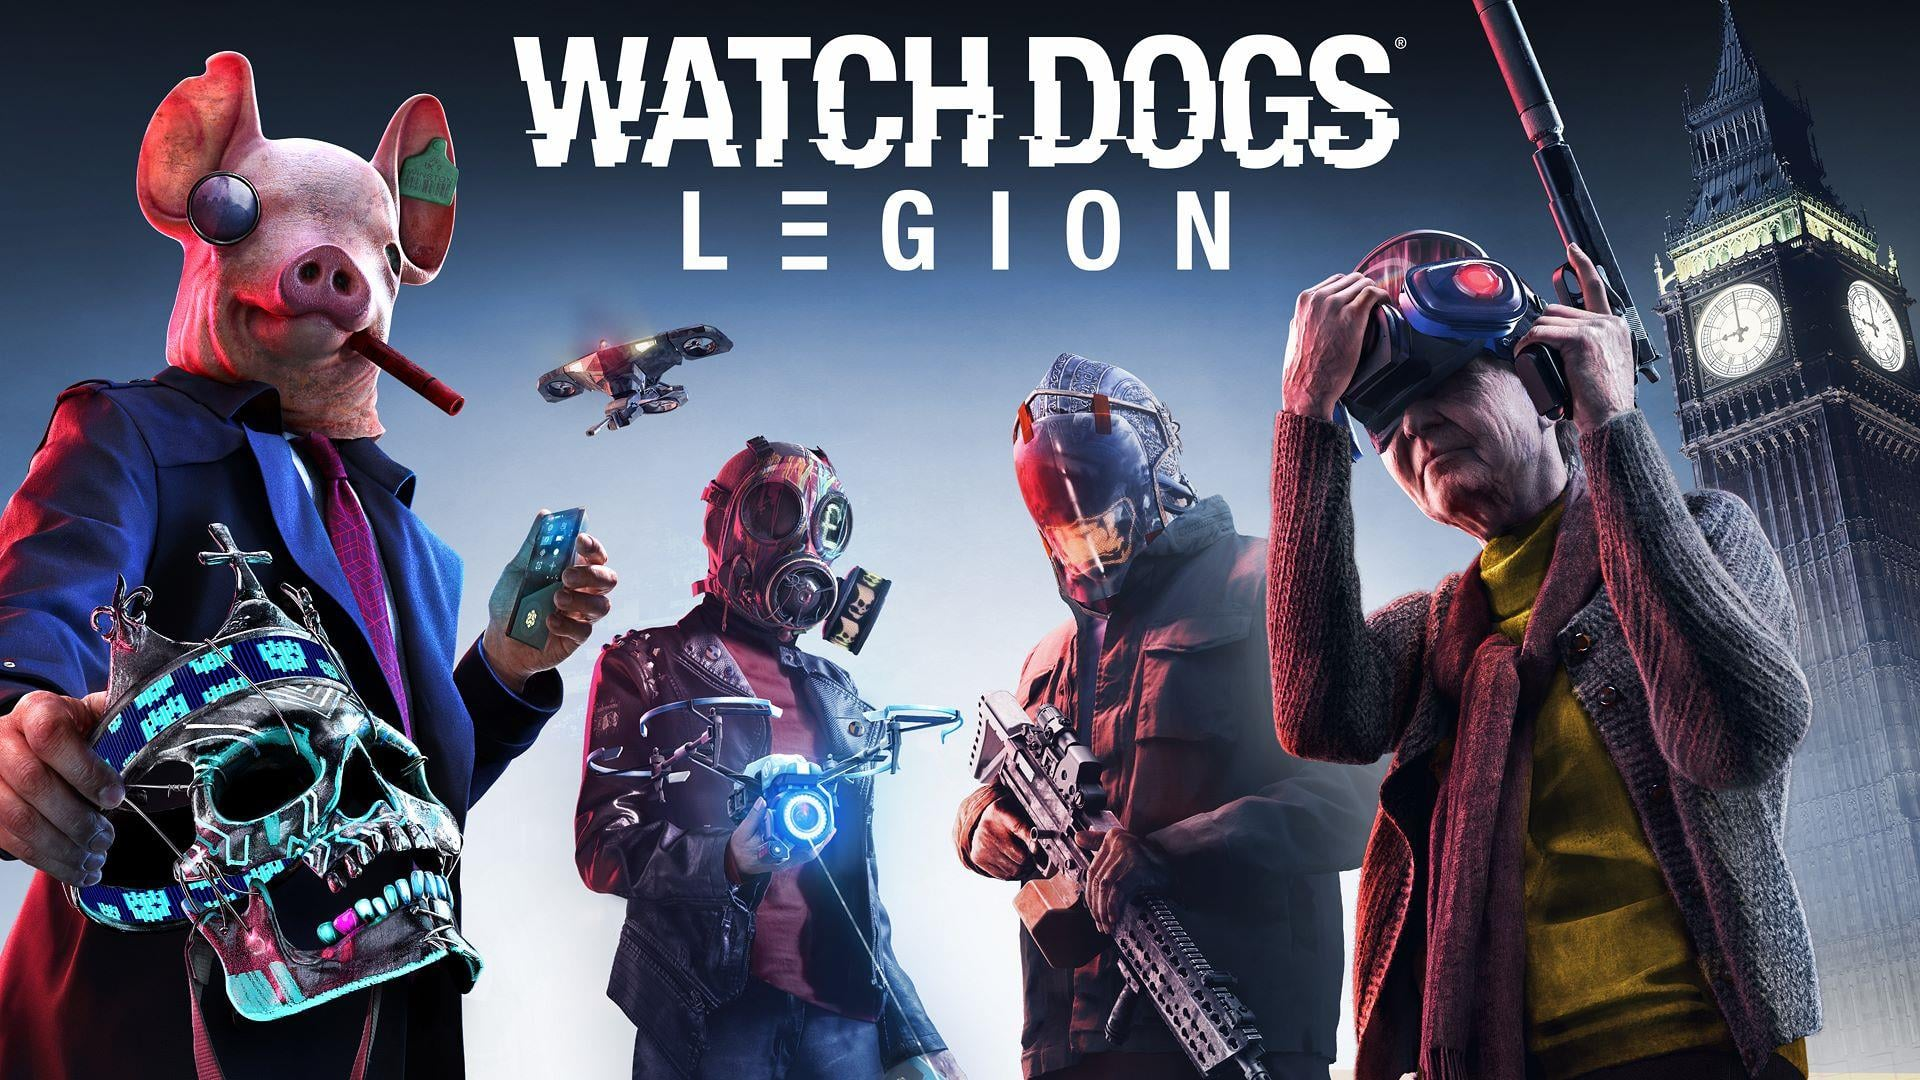 Watch Dogs: Legion gets an October release date and new trailer